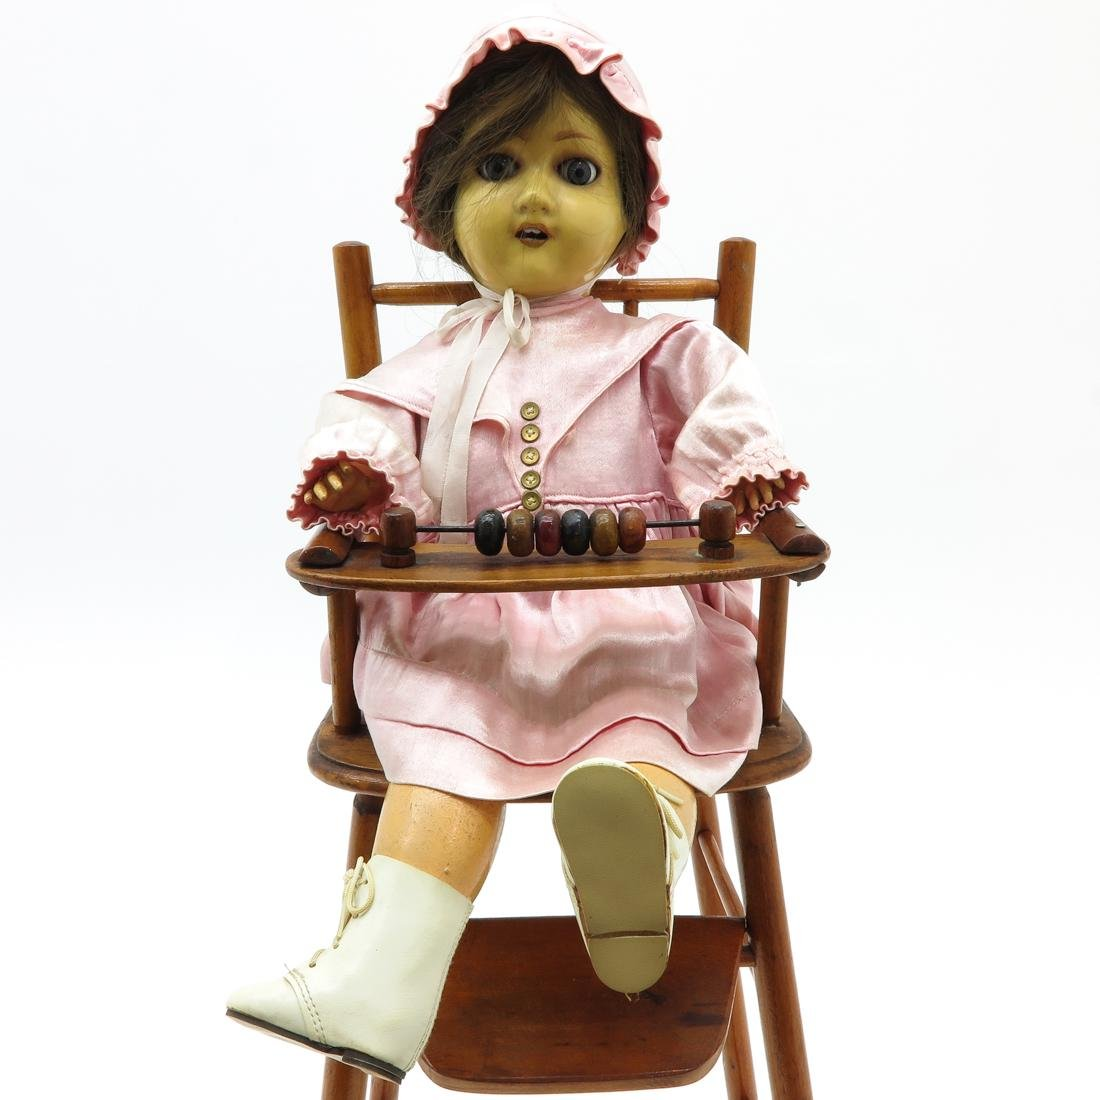 Vintage Doll in High Chair - 2